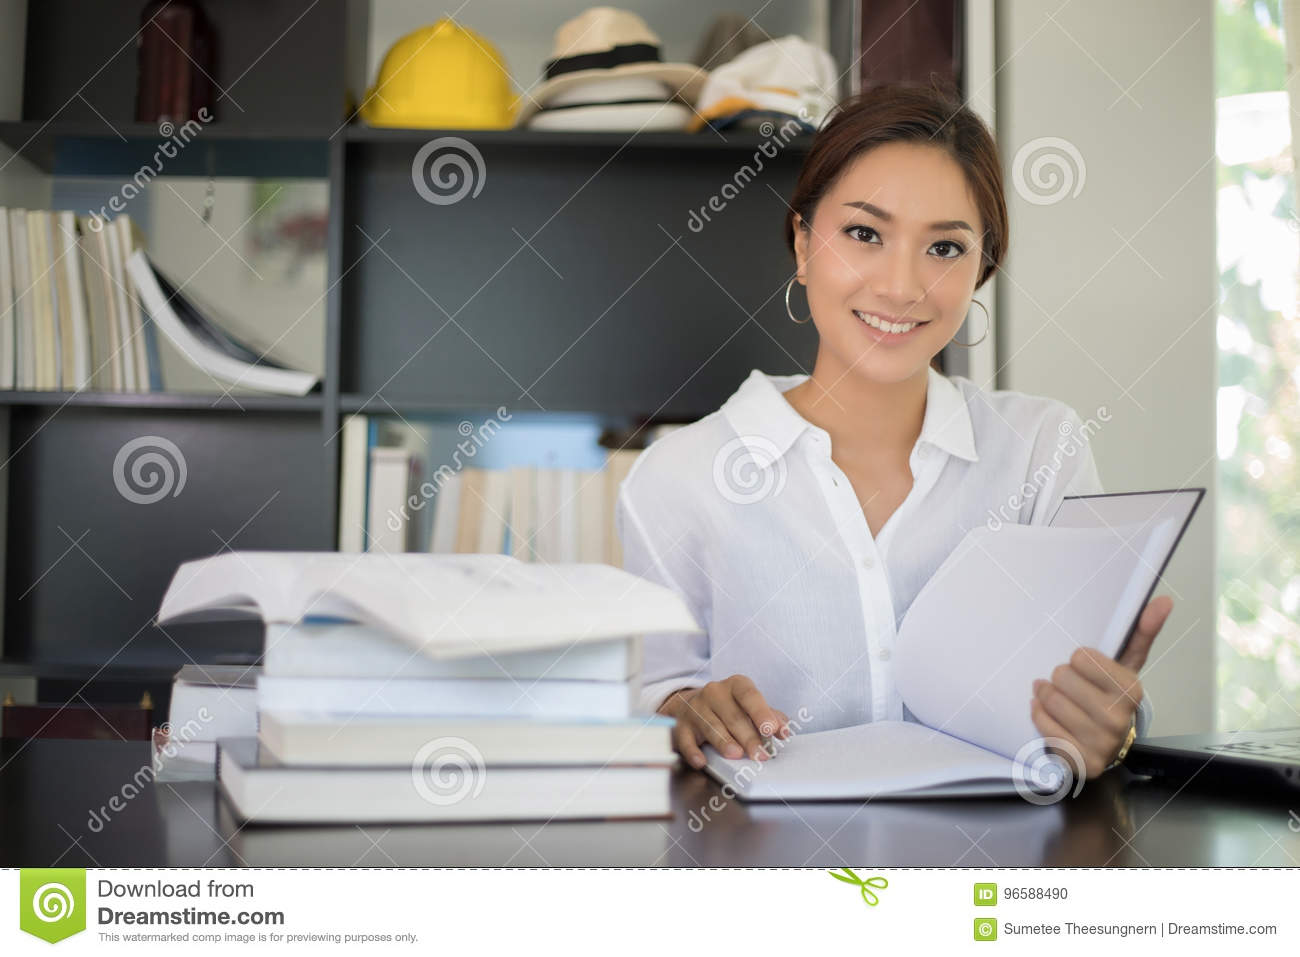 Asian women student smiling and reading a book for relaxation